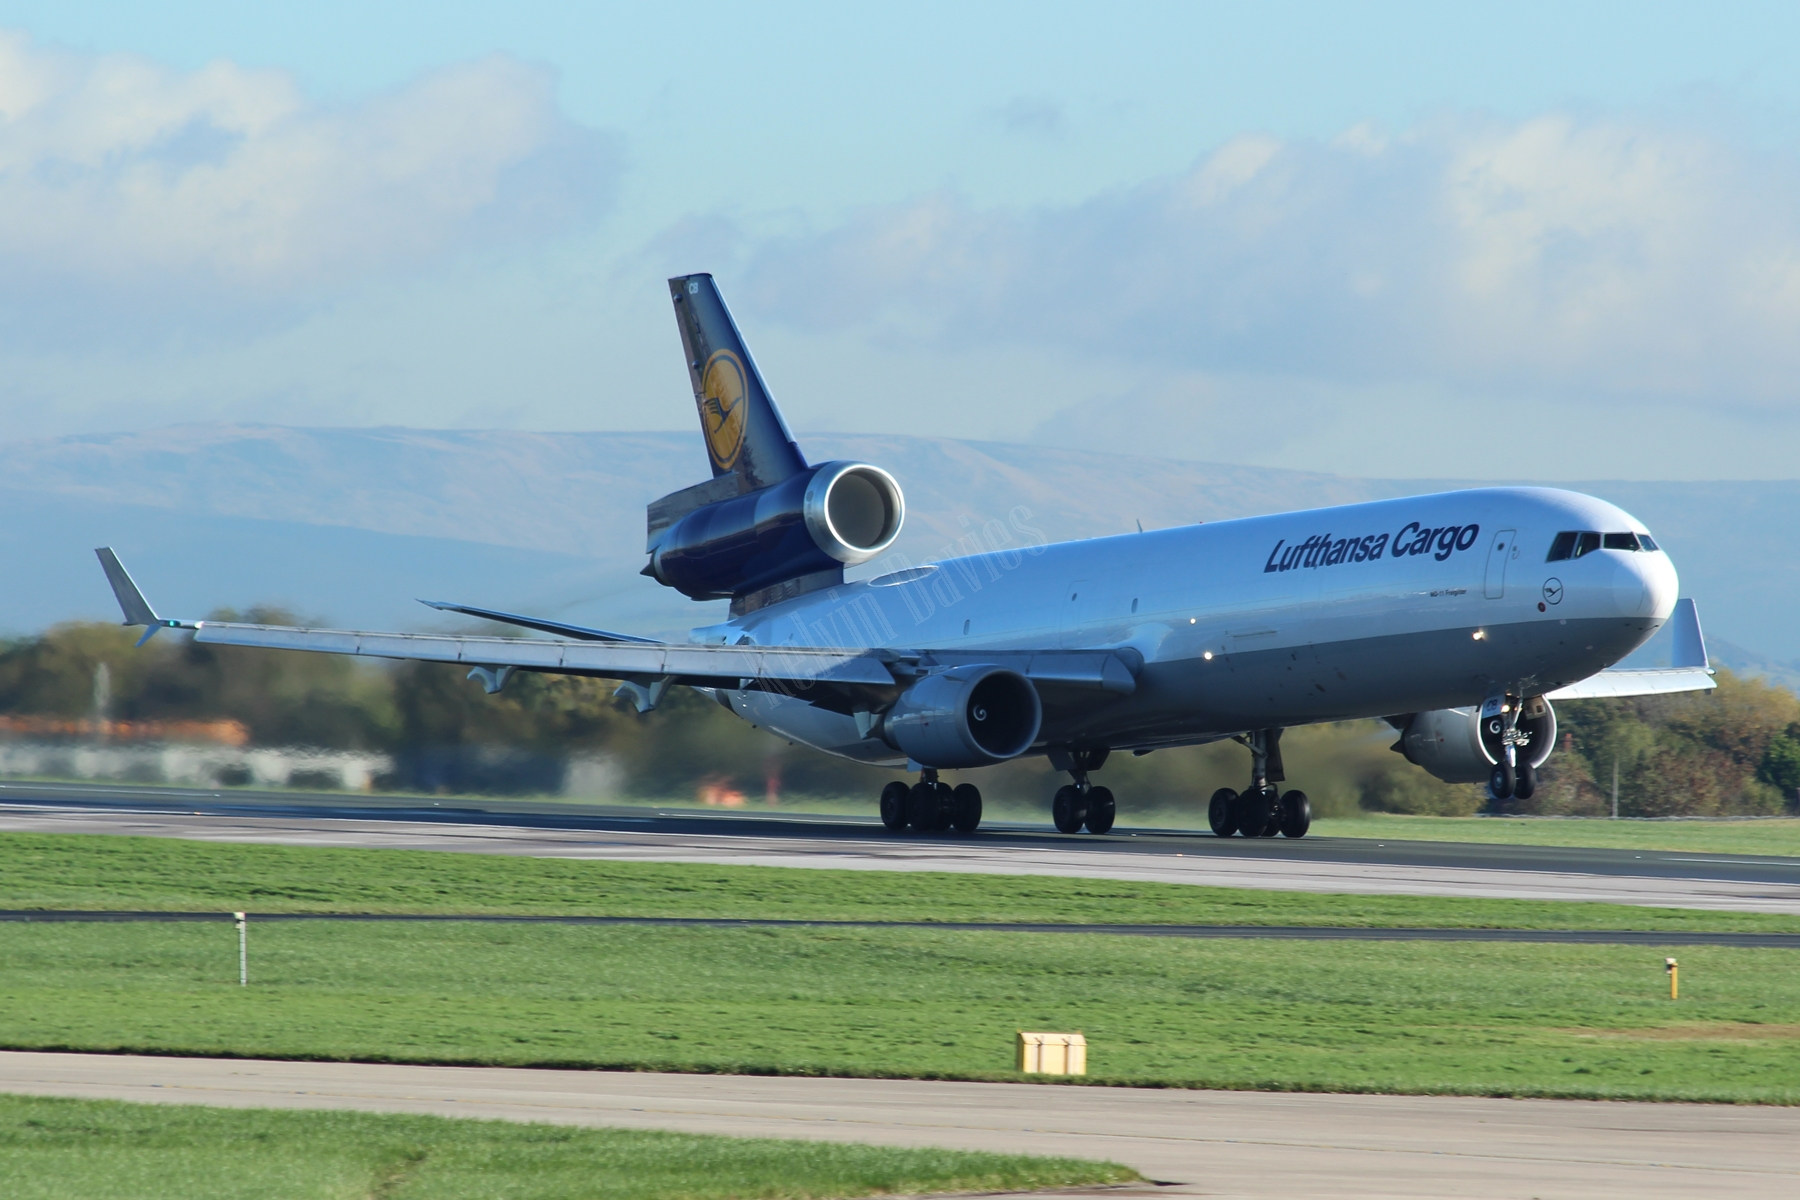 Lufthansa Cargo Tracking Contact Number